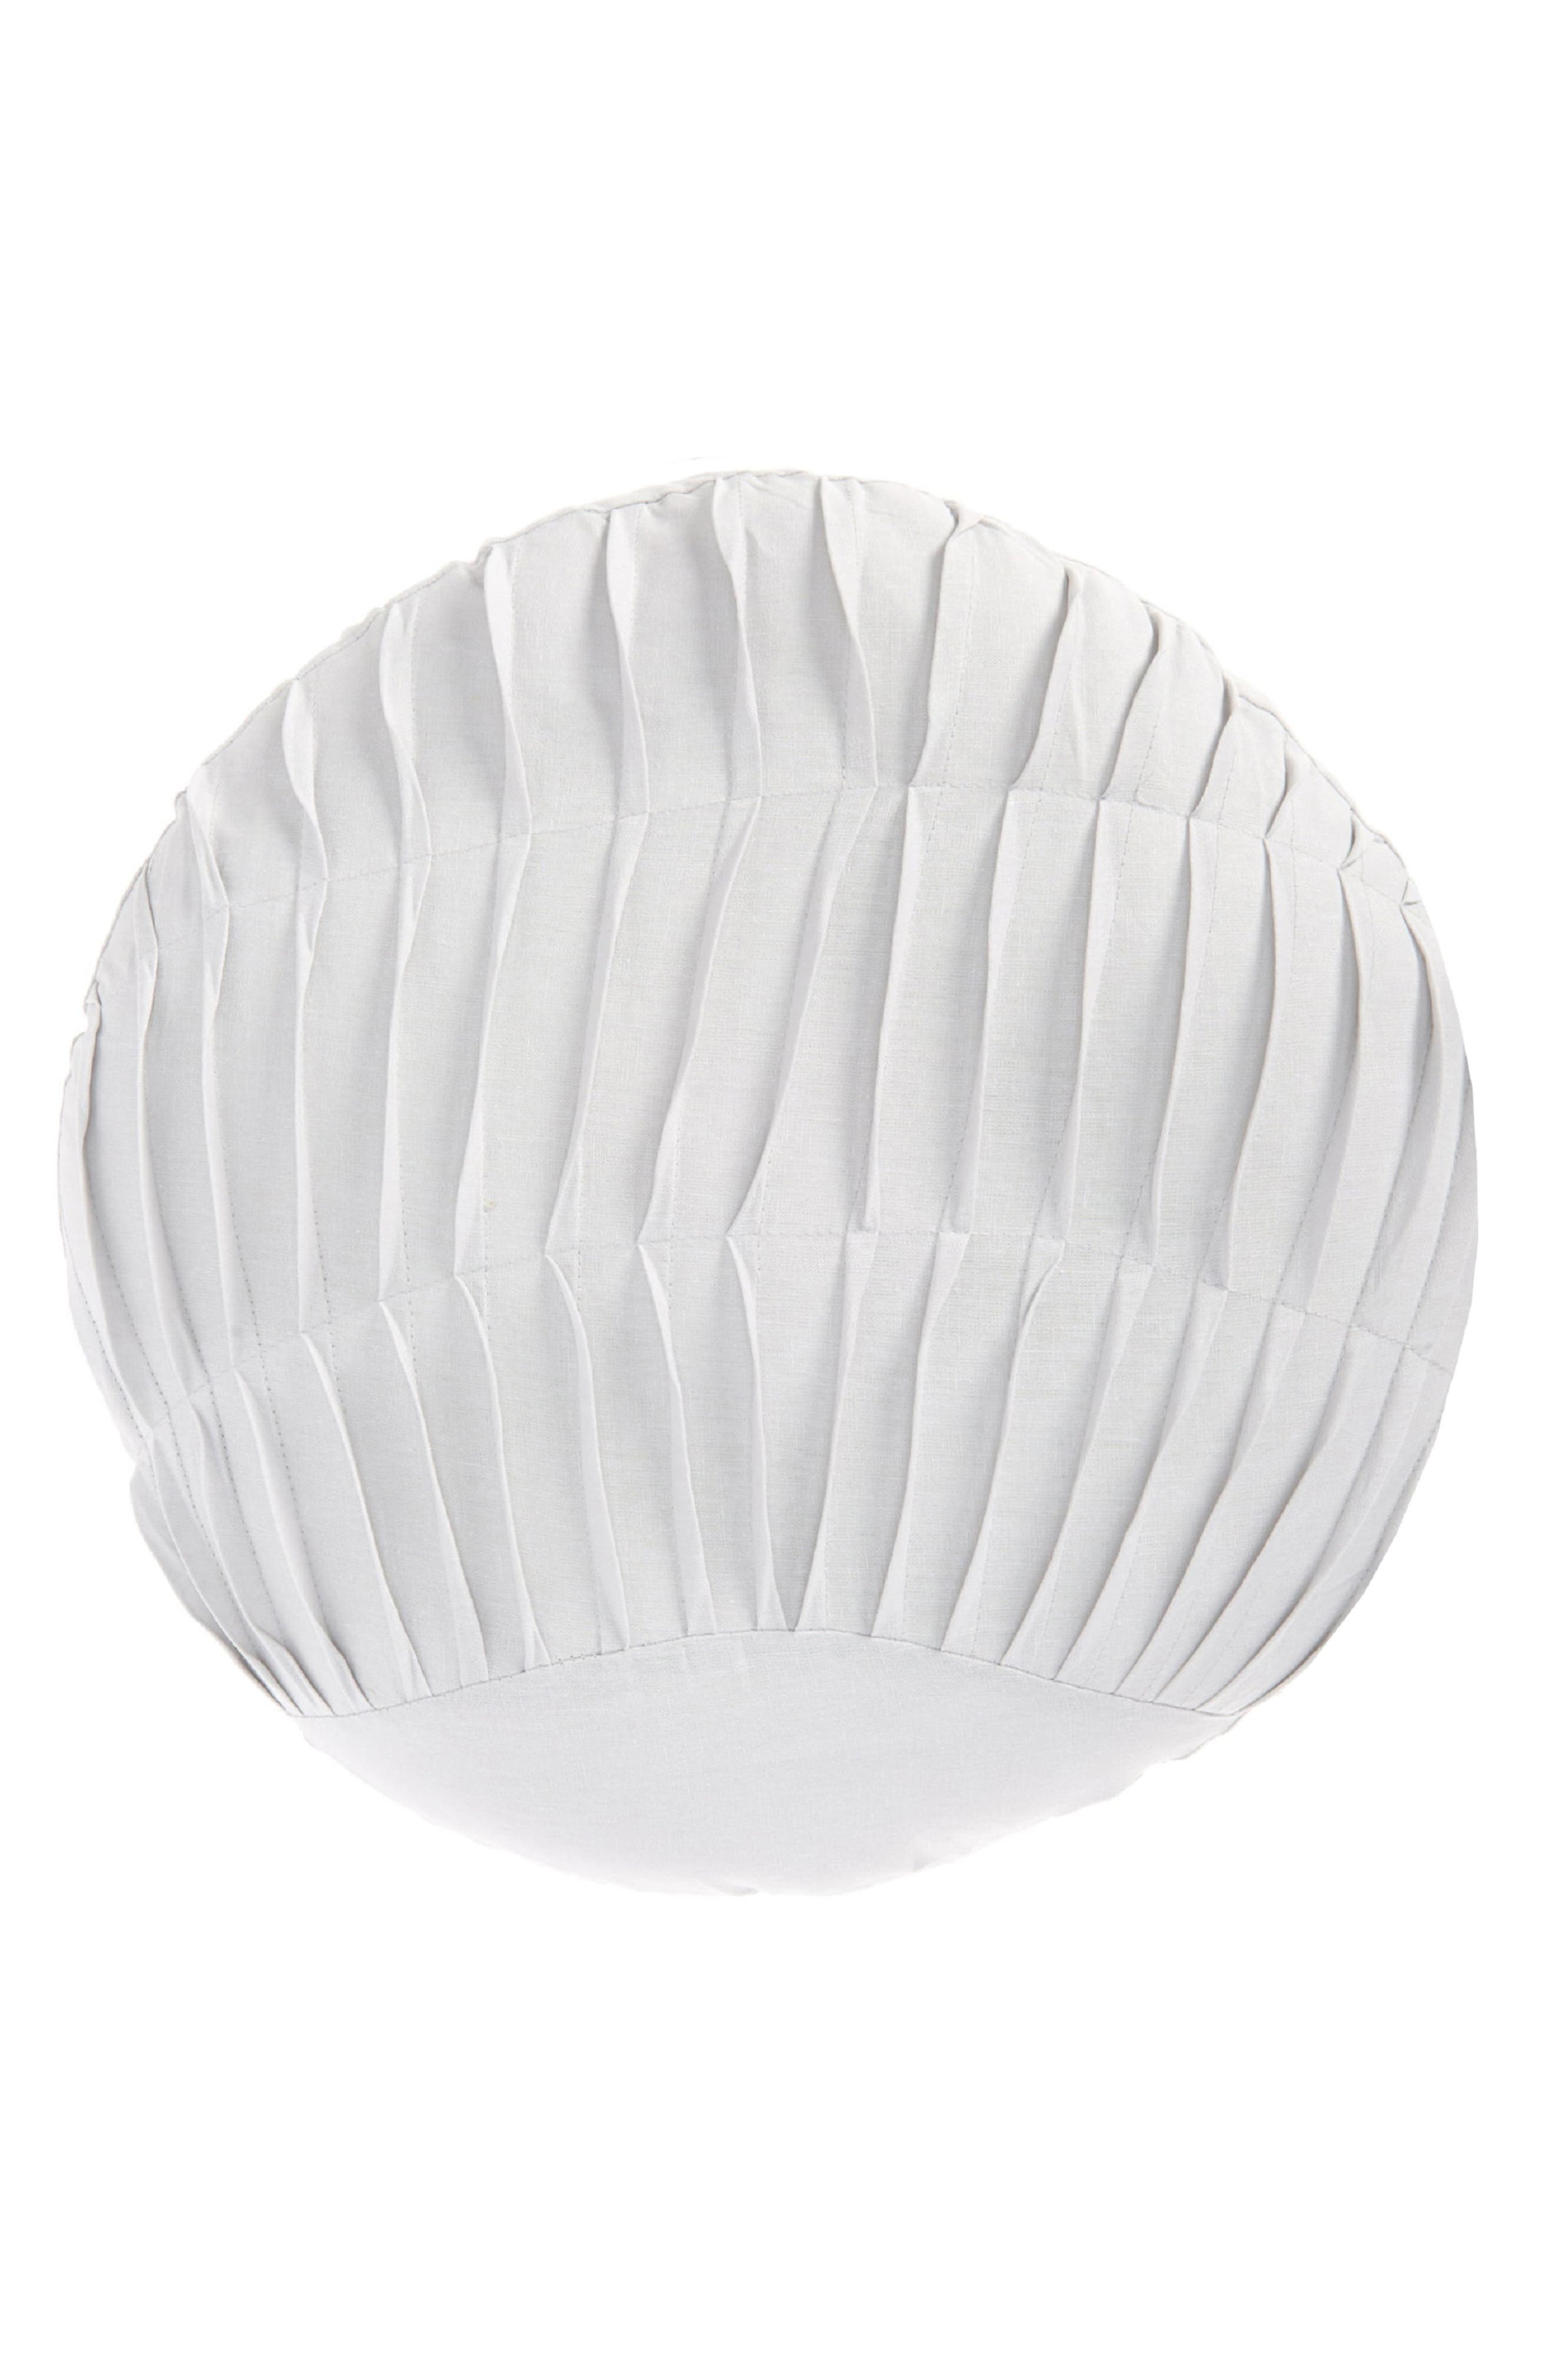 A round pillow of breathable linen and cotton has neat pintucked pleats down the front to make it look like a cute shell for a nautical touch. Style Name: Nordstrom Pleated Shell Pillow. Style Number: 5957968 1. Available in stores.